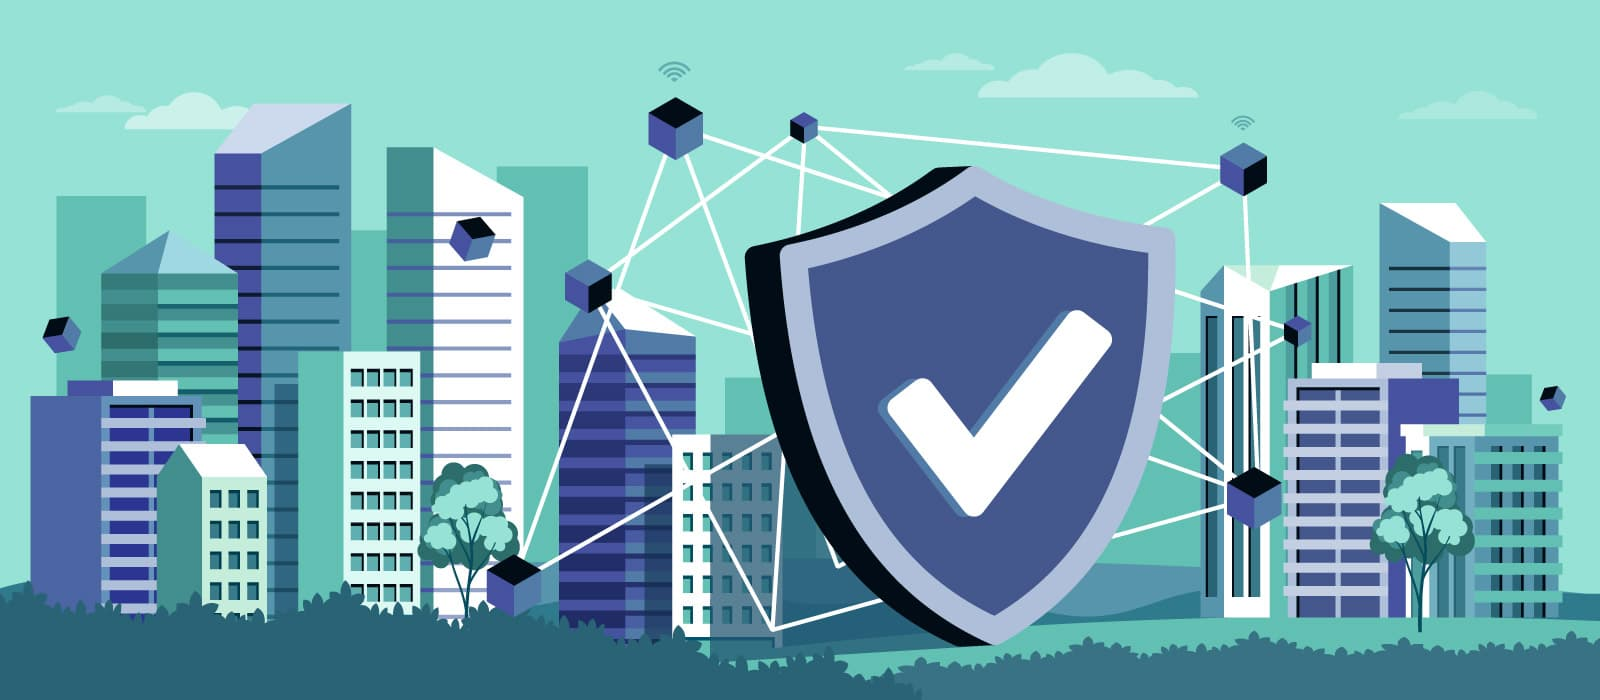 A security shield with a distributed network on a city background